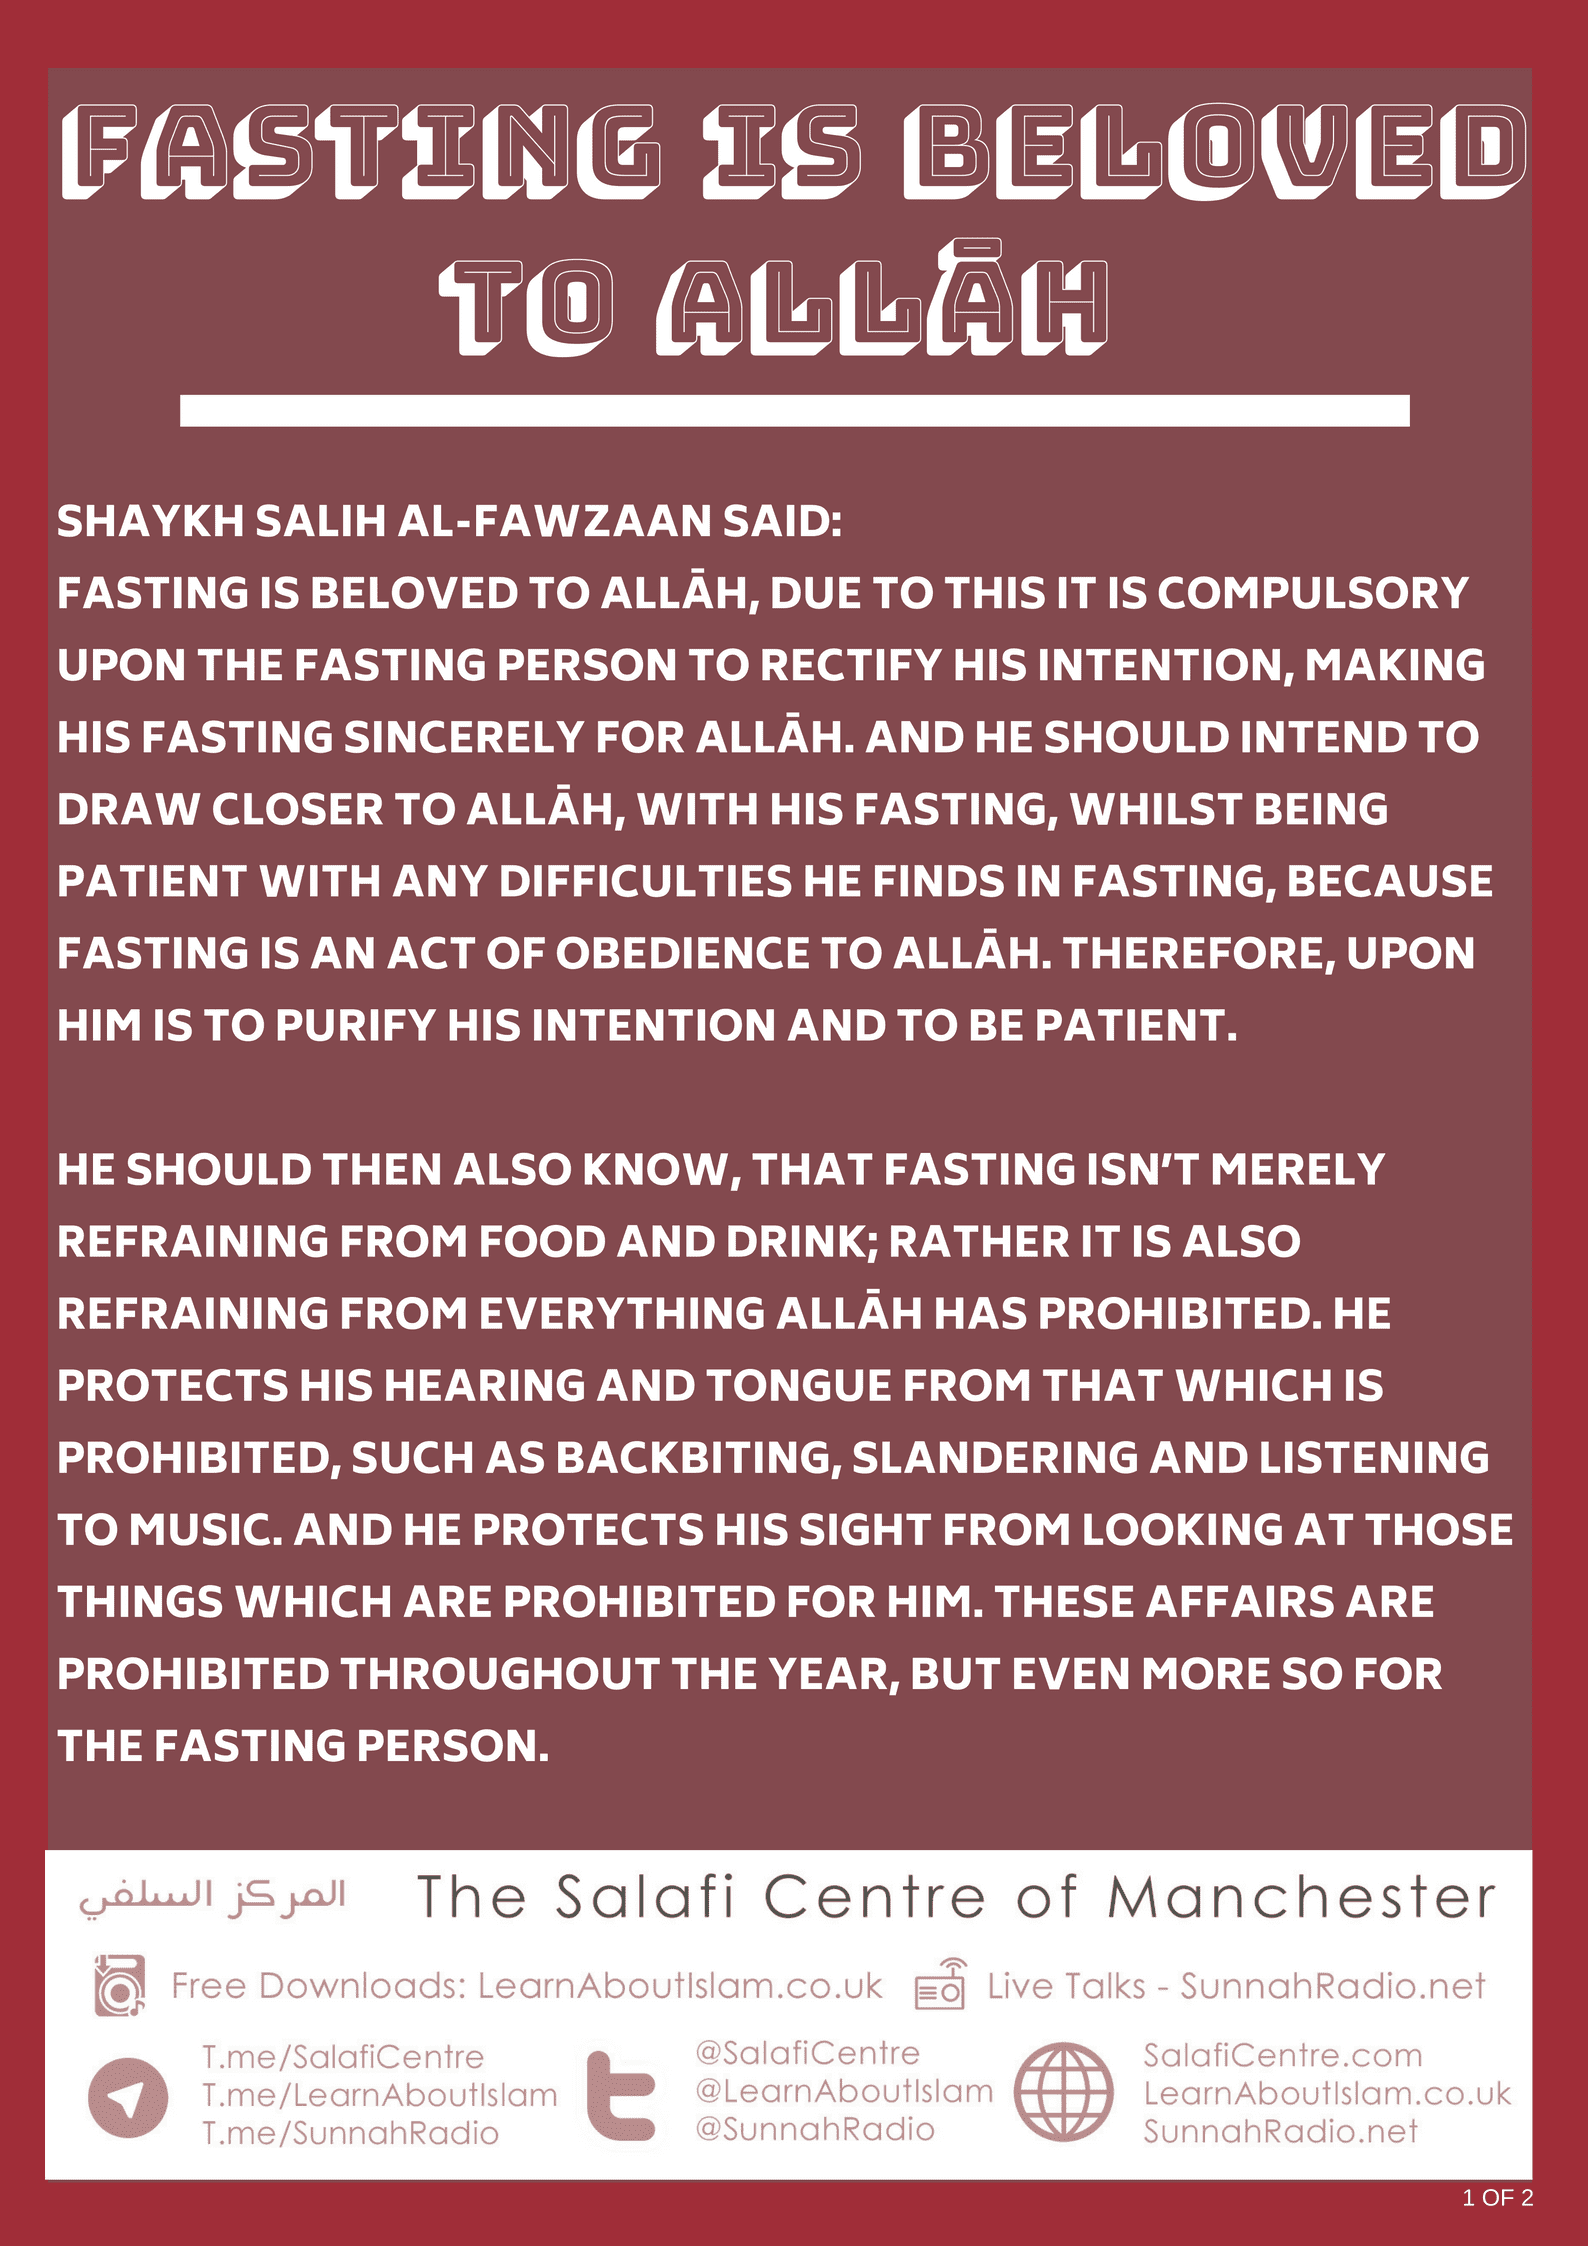 Fasting is Beloved to Allāh – Shaykh Fawzān